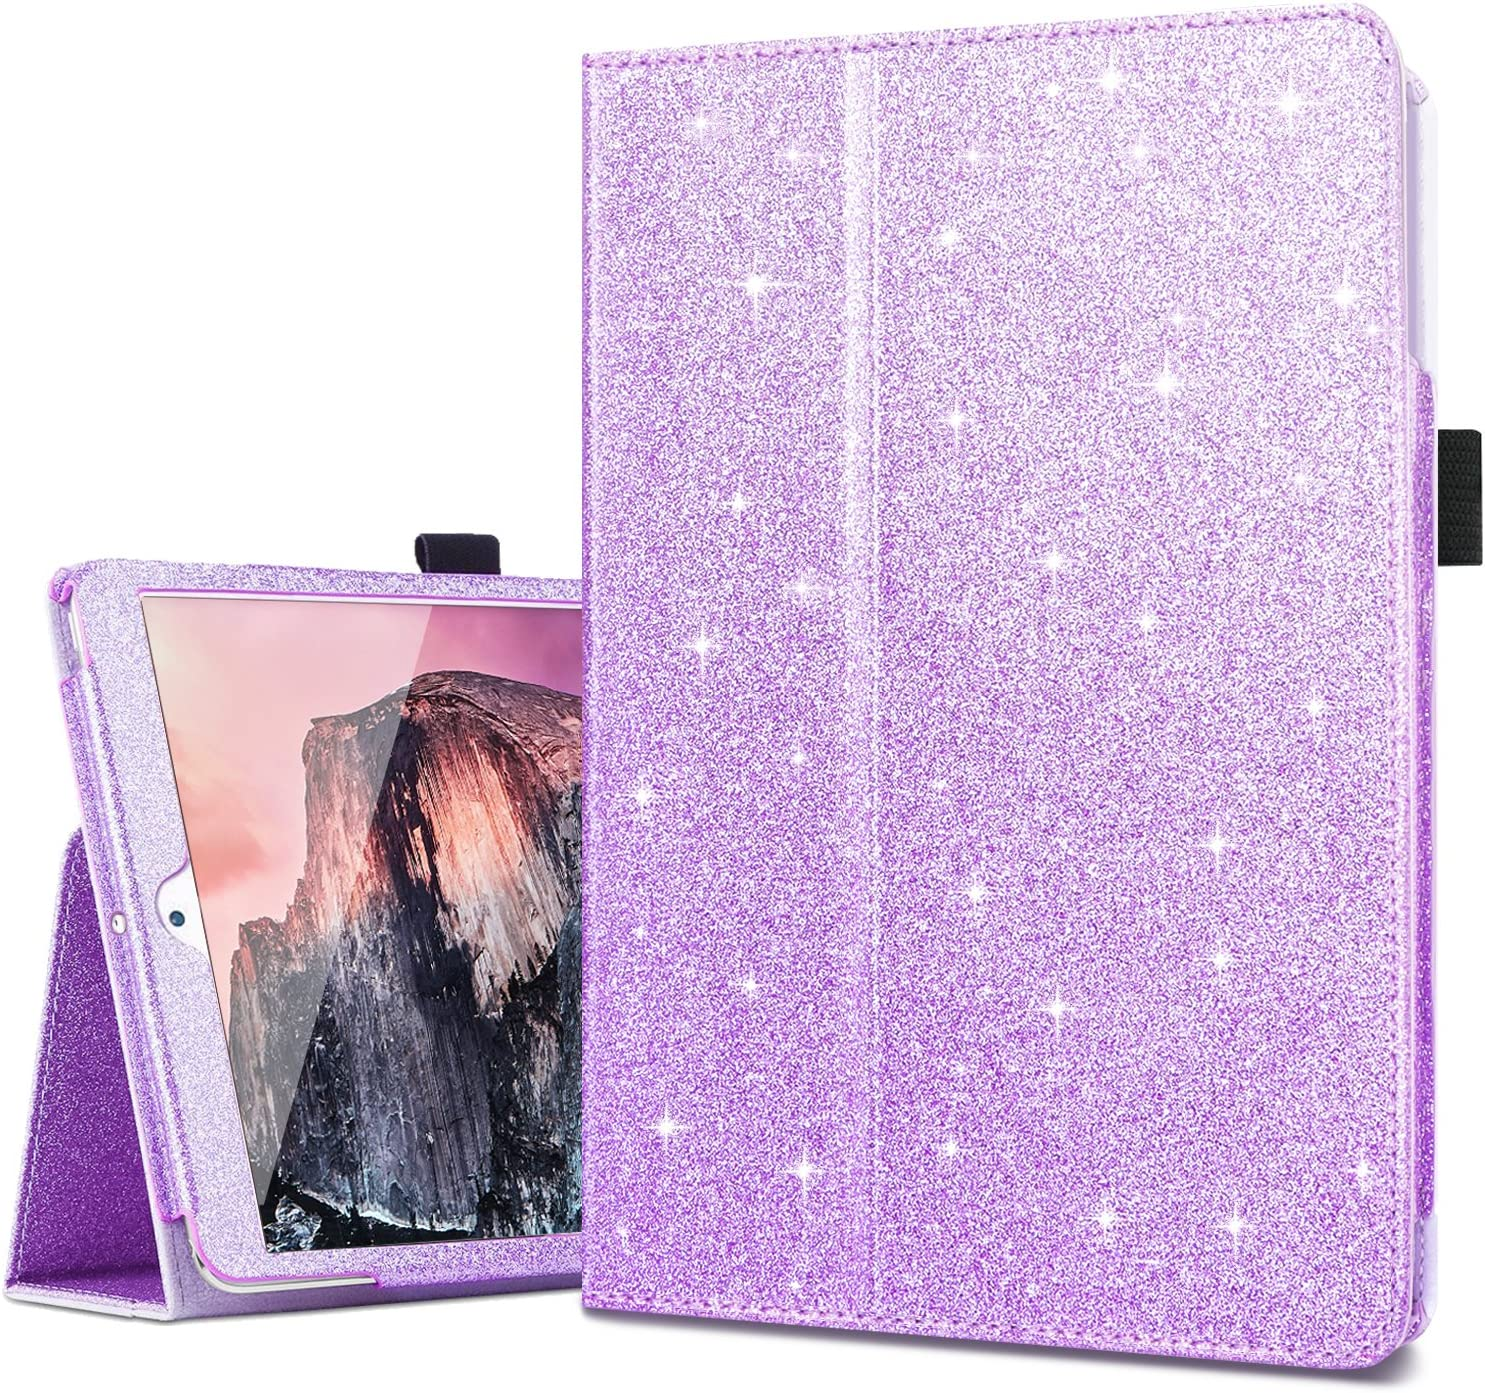 Outlet ☆ Free Shipping iPad Mini Case 5 2 New popularity 3